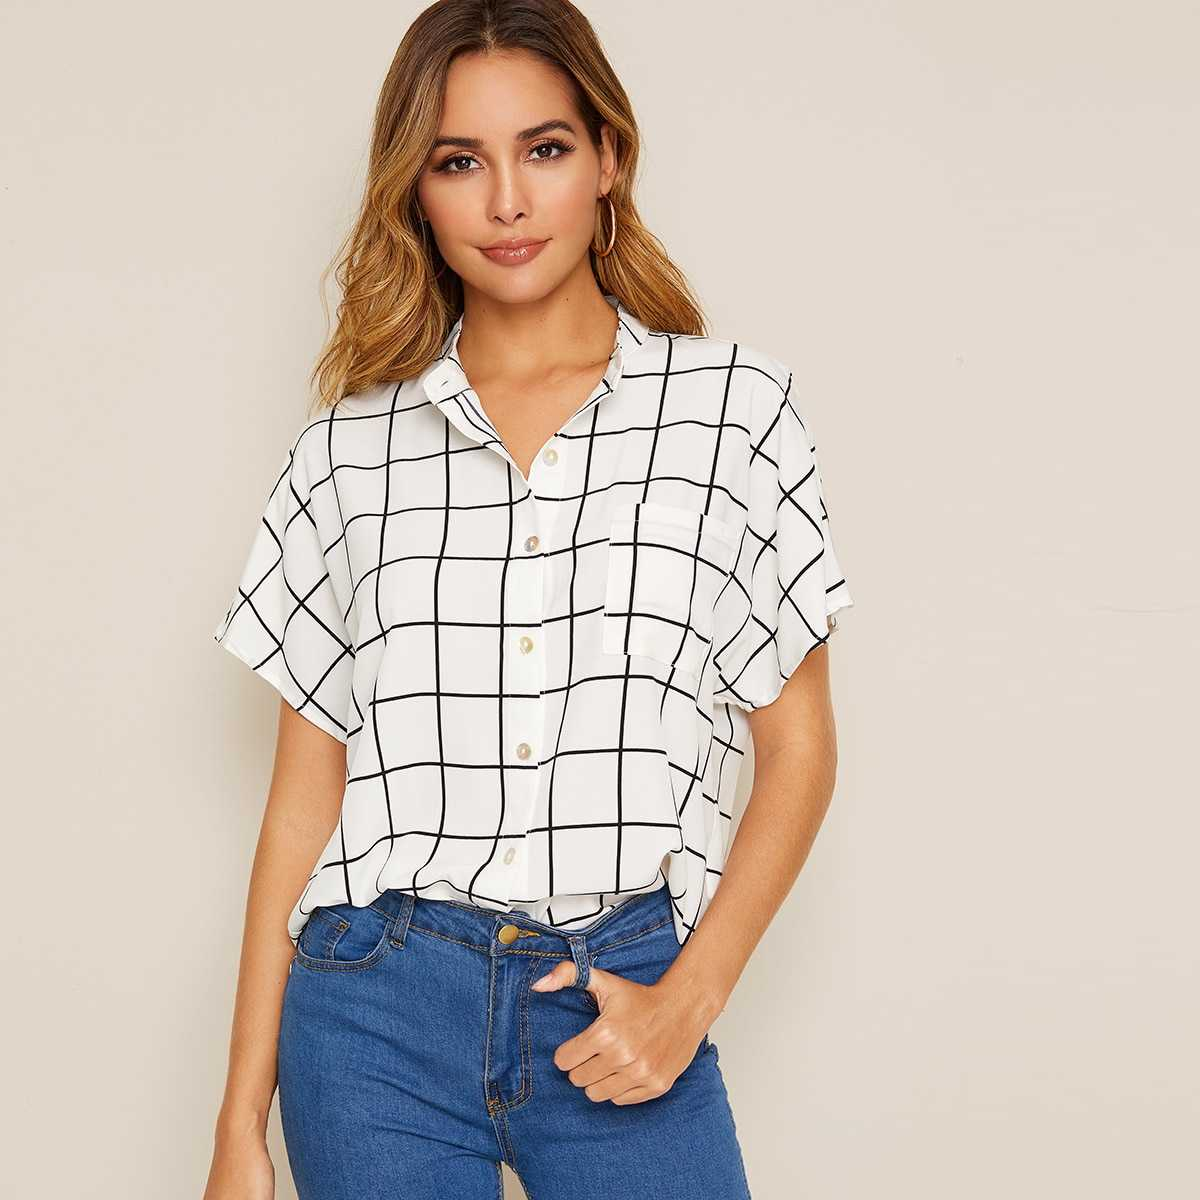 Grid Print Batwing Sleeve Shirt in White by ROMWE on GOOFASH